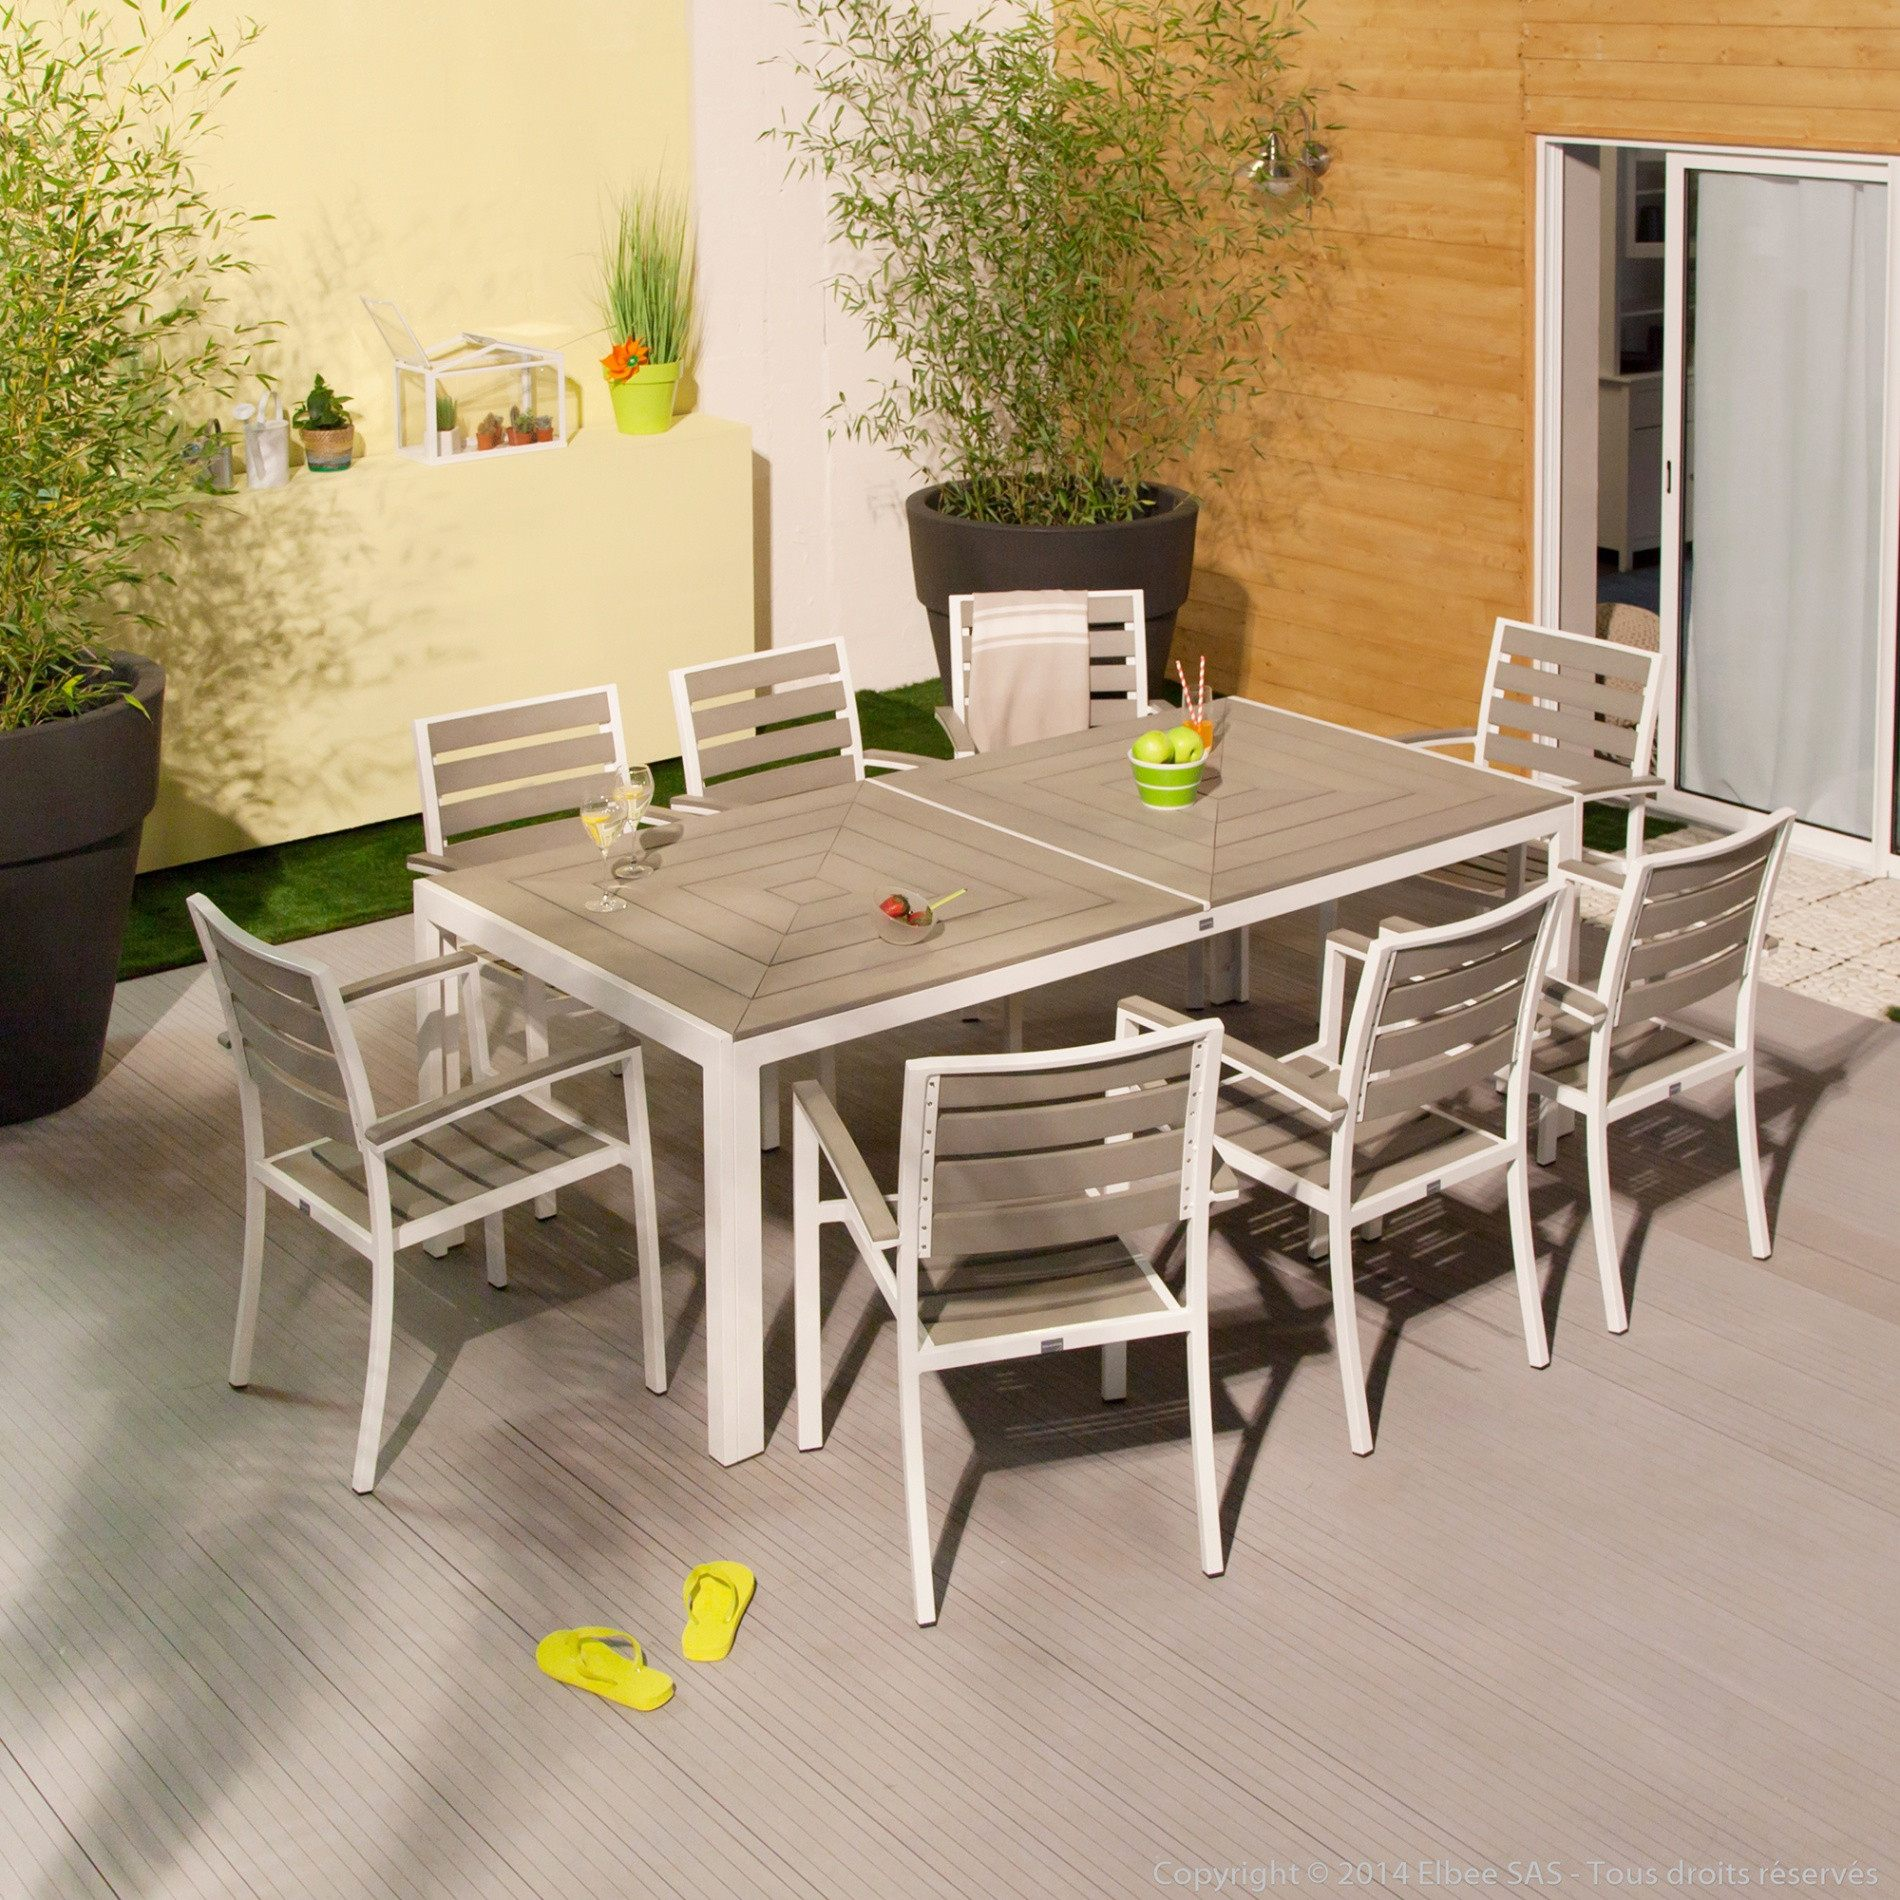 table de terrasse pas cher joli tableau salon design salon angle jardin belle table de jardin design de table de terrasse pas cher